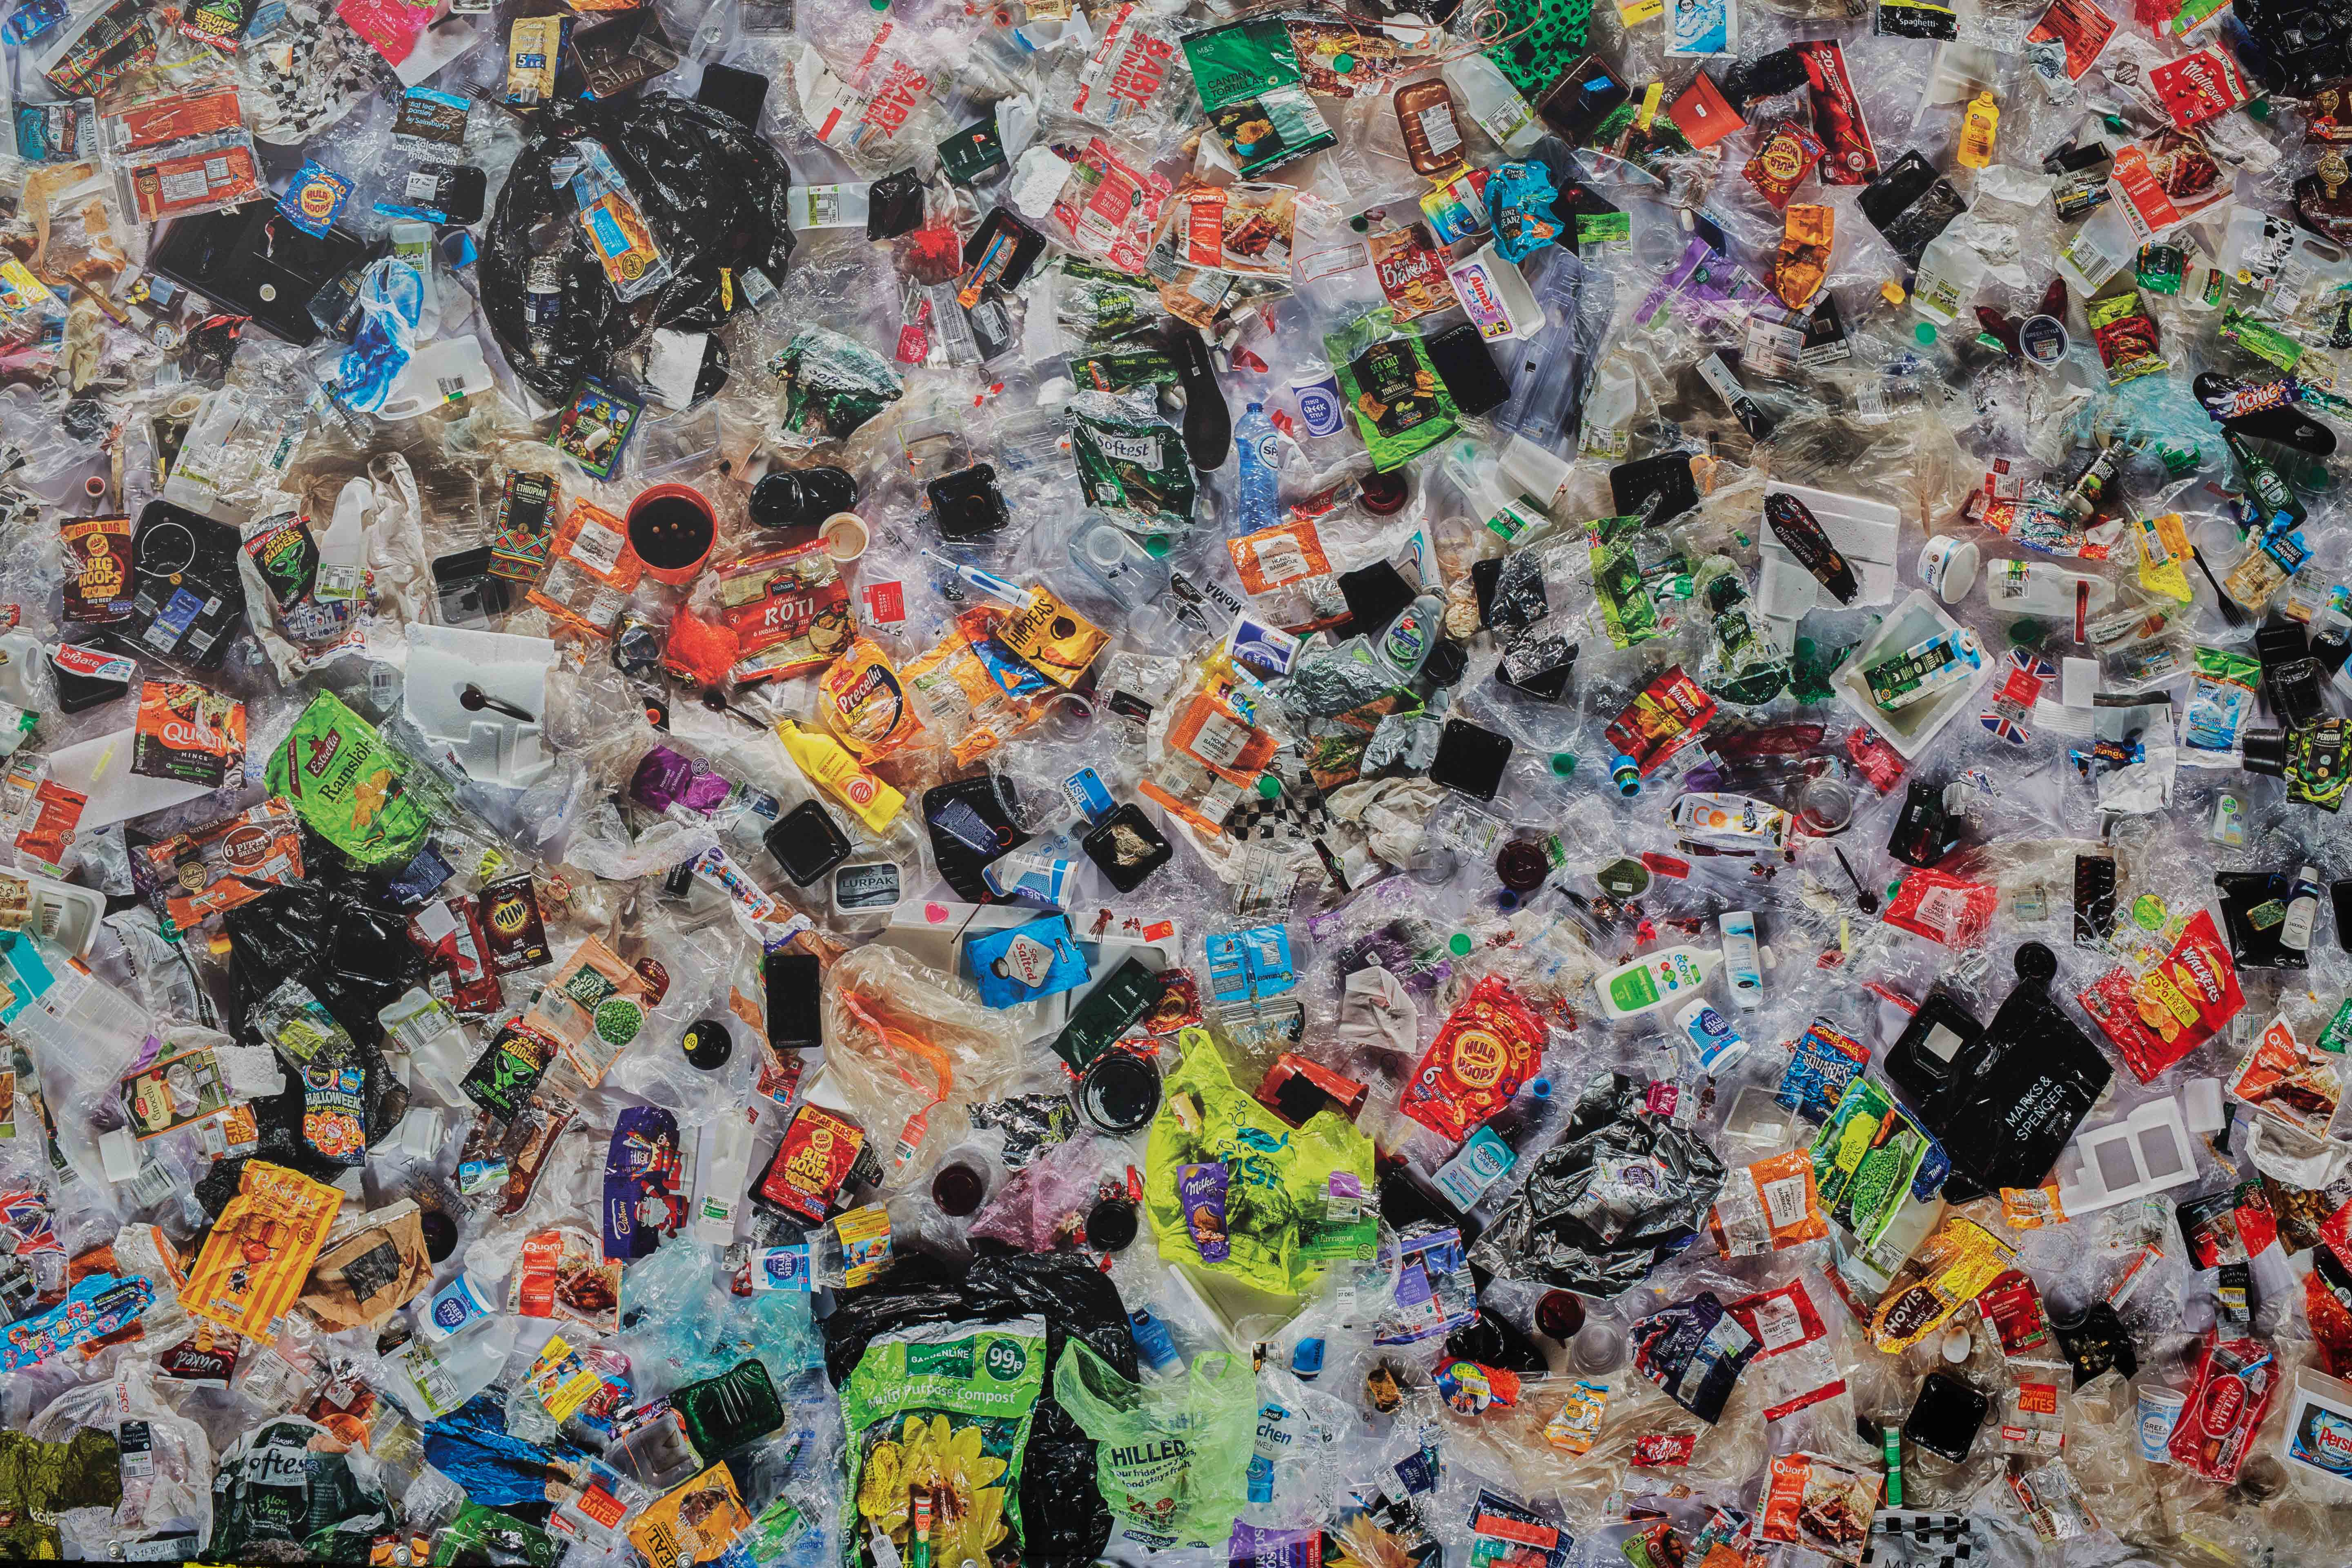 A snapshot of 'Everyday Plastic'